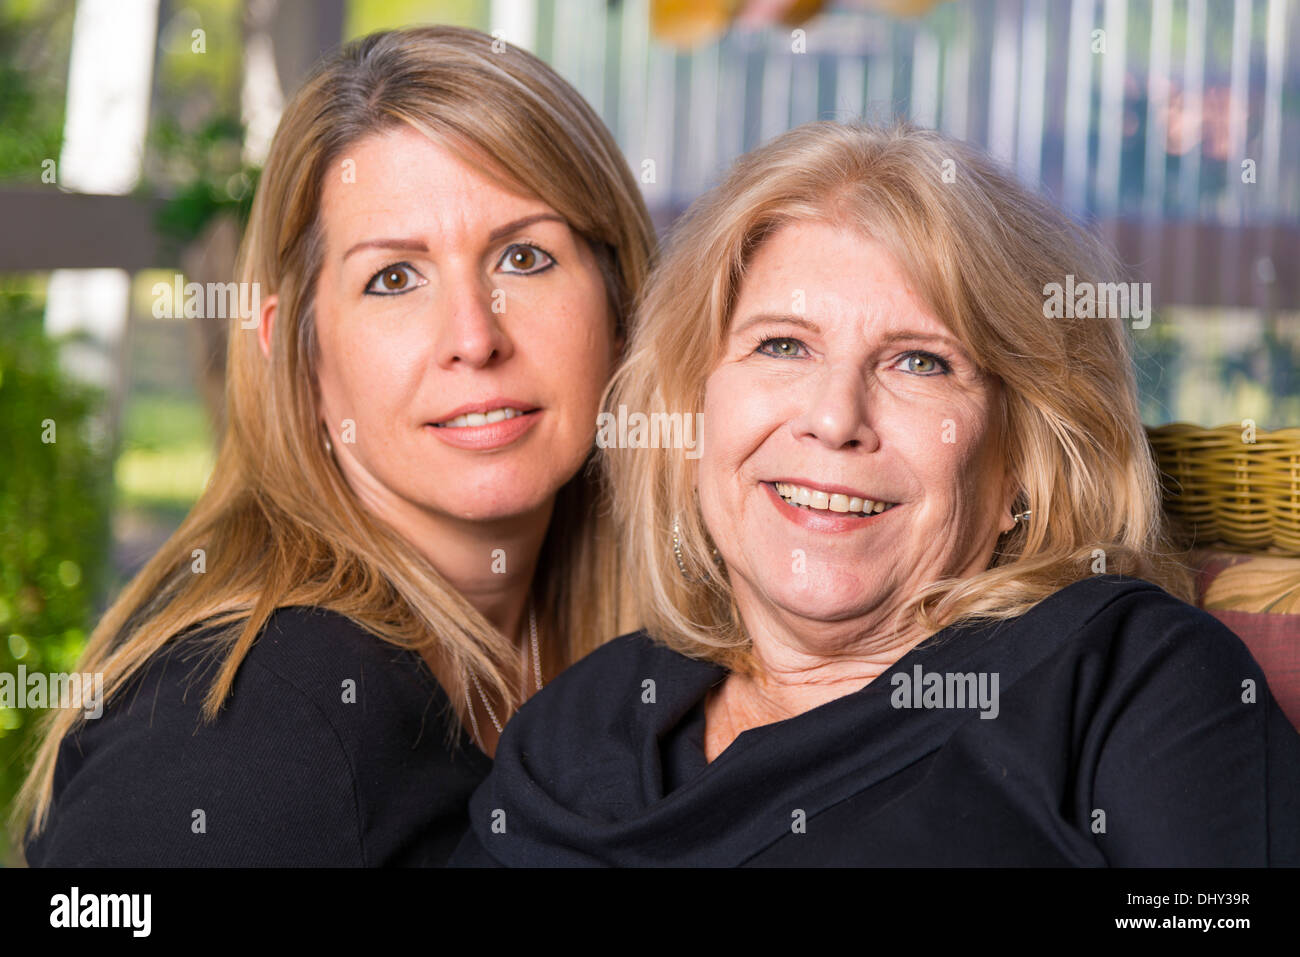 Portrait Of Two Women Mother And Daughter 61 44 Years Old Caucasian Ethnicity